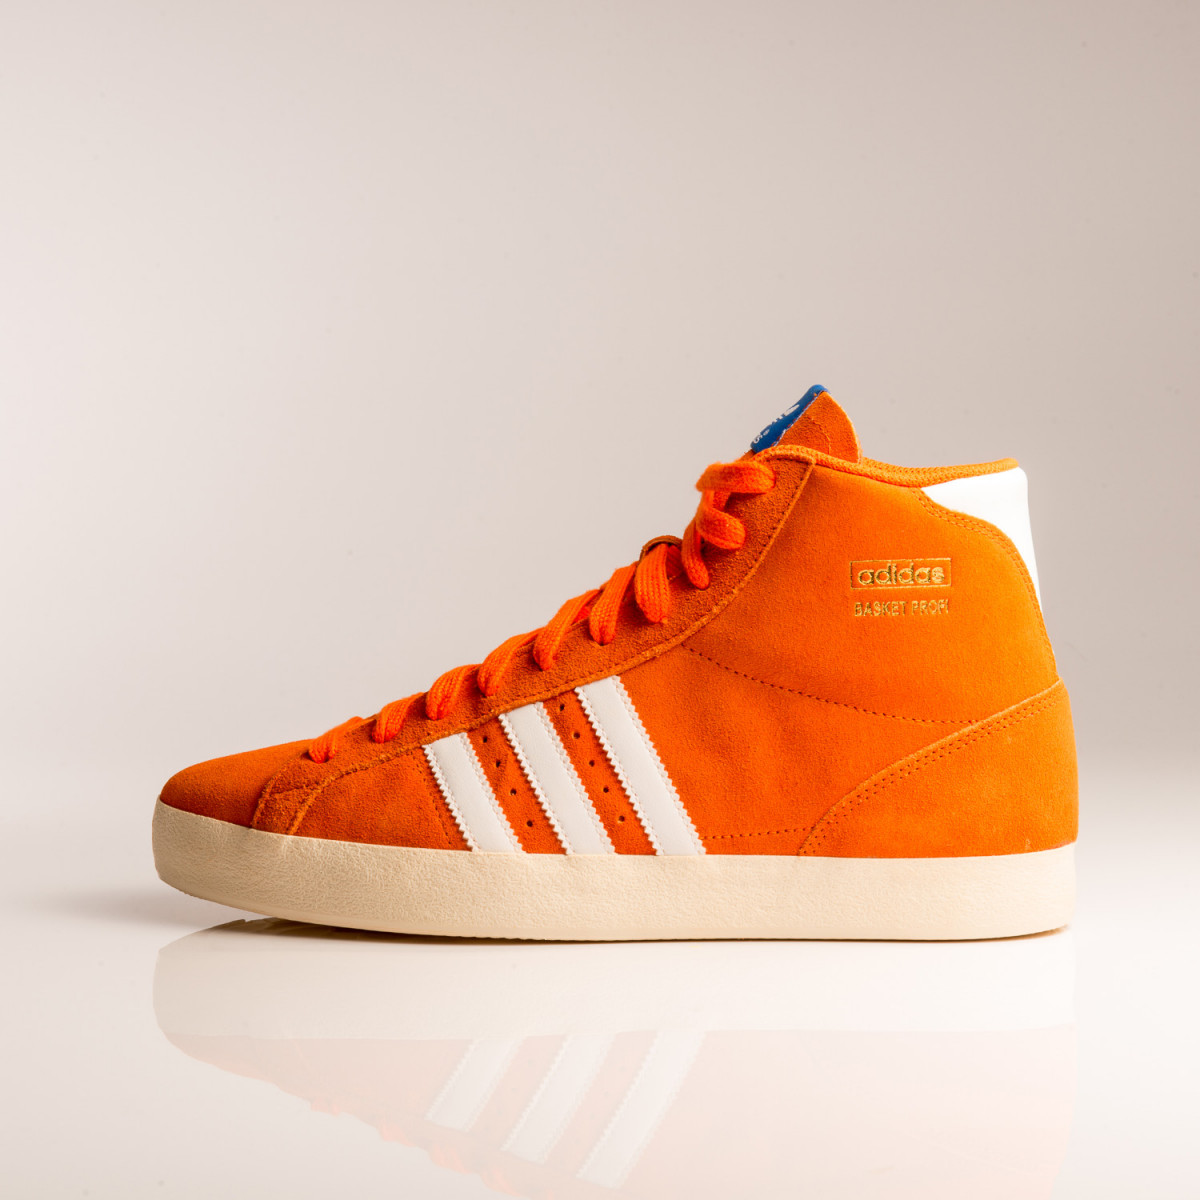 BOTAS ADIDAS ORIGINALS BASKET PROFI